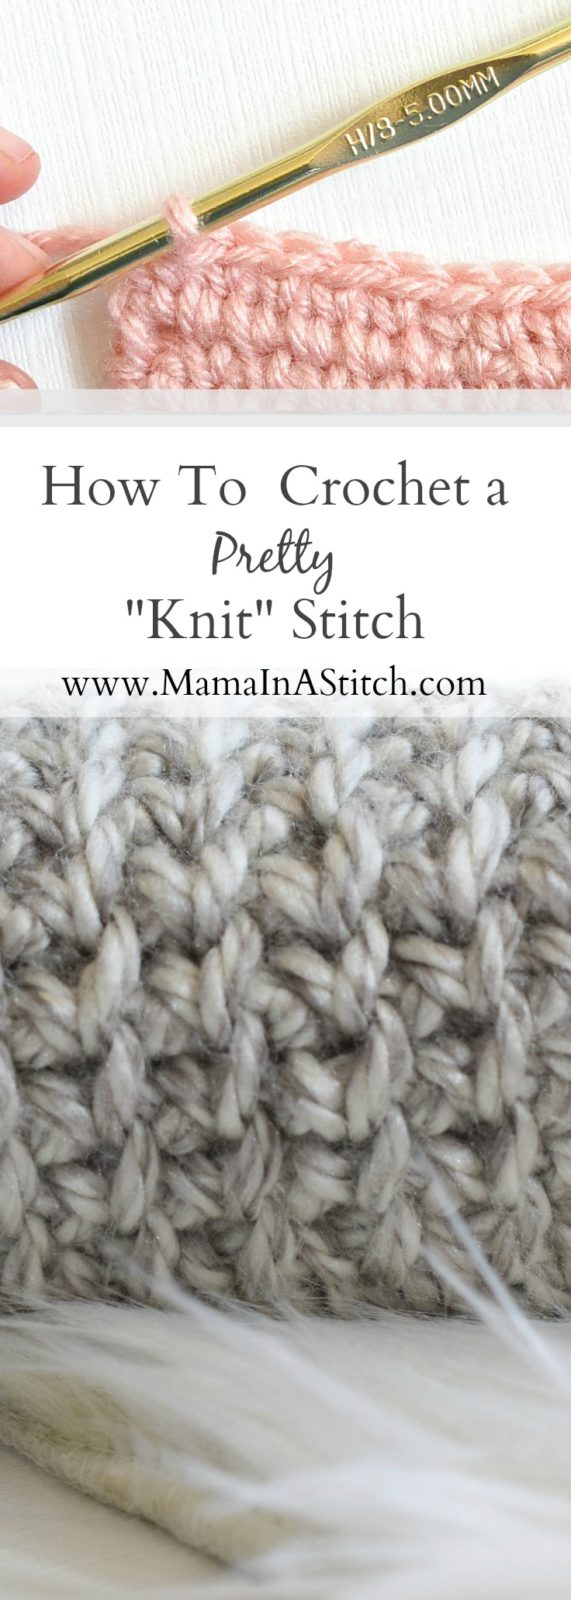 Knit Stitch For Crochet : How To Crochet A